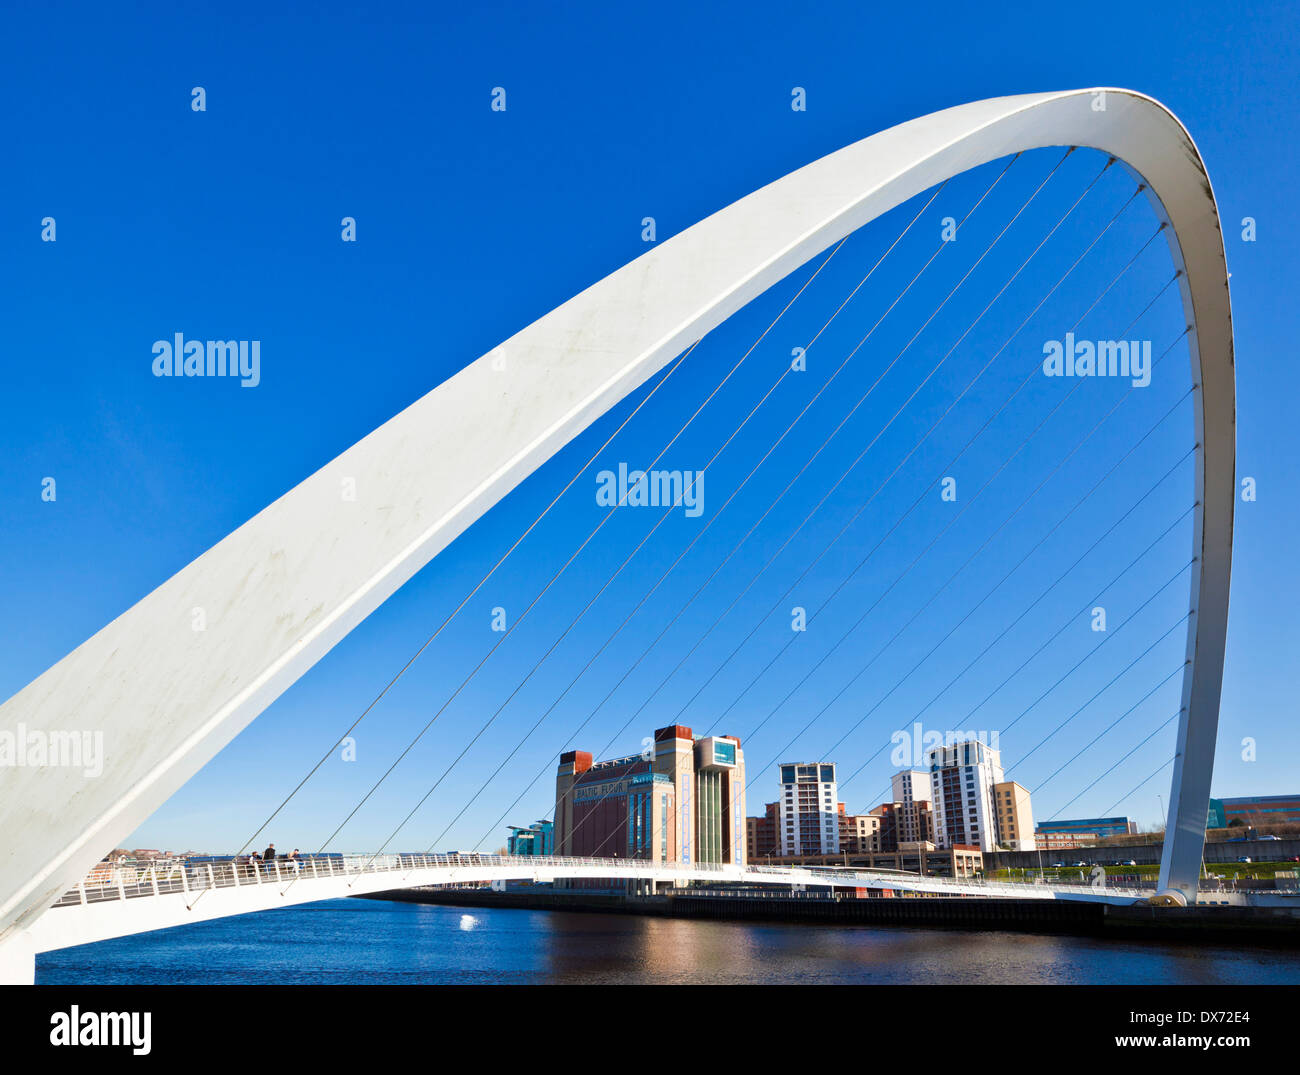 Gateshead Millennium ponte sul fiume Tyne Newcastle upon Tyne Tyne and Wear Tyneside Inghilterra UK GB EU Europe Immagini Stock